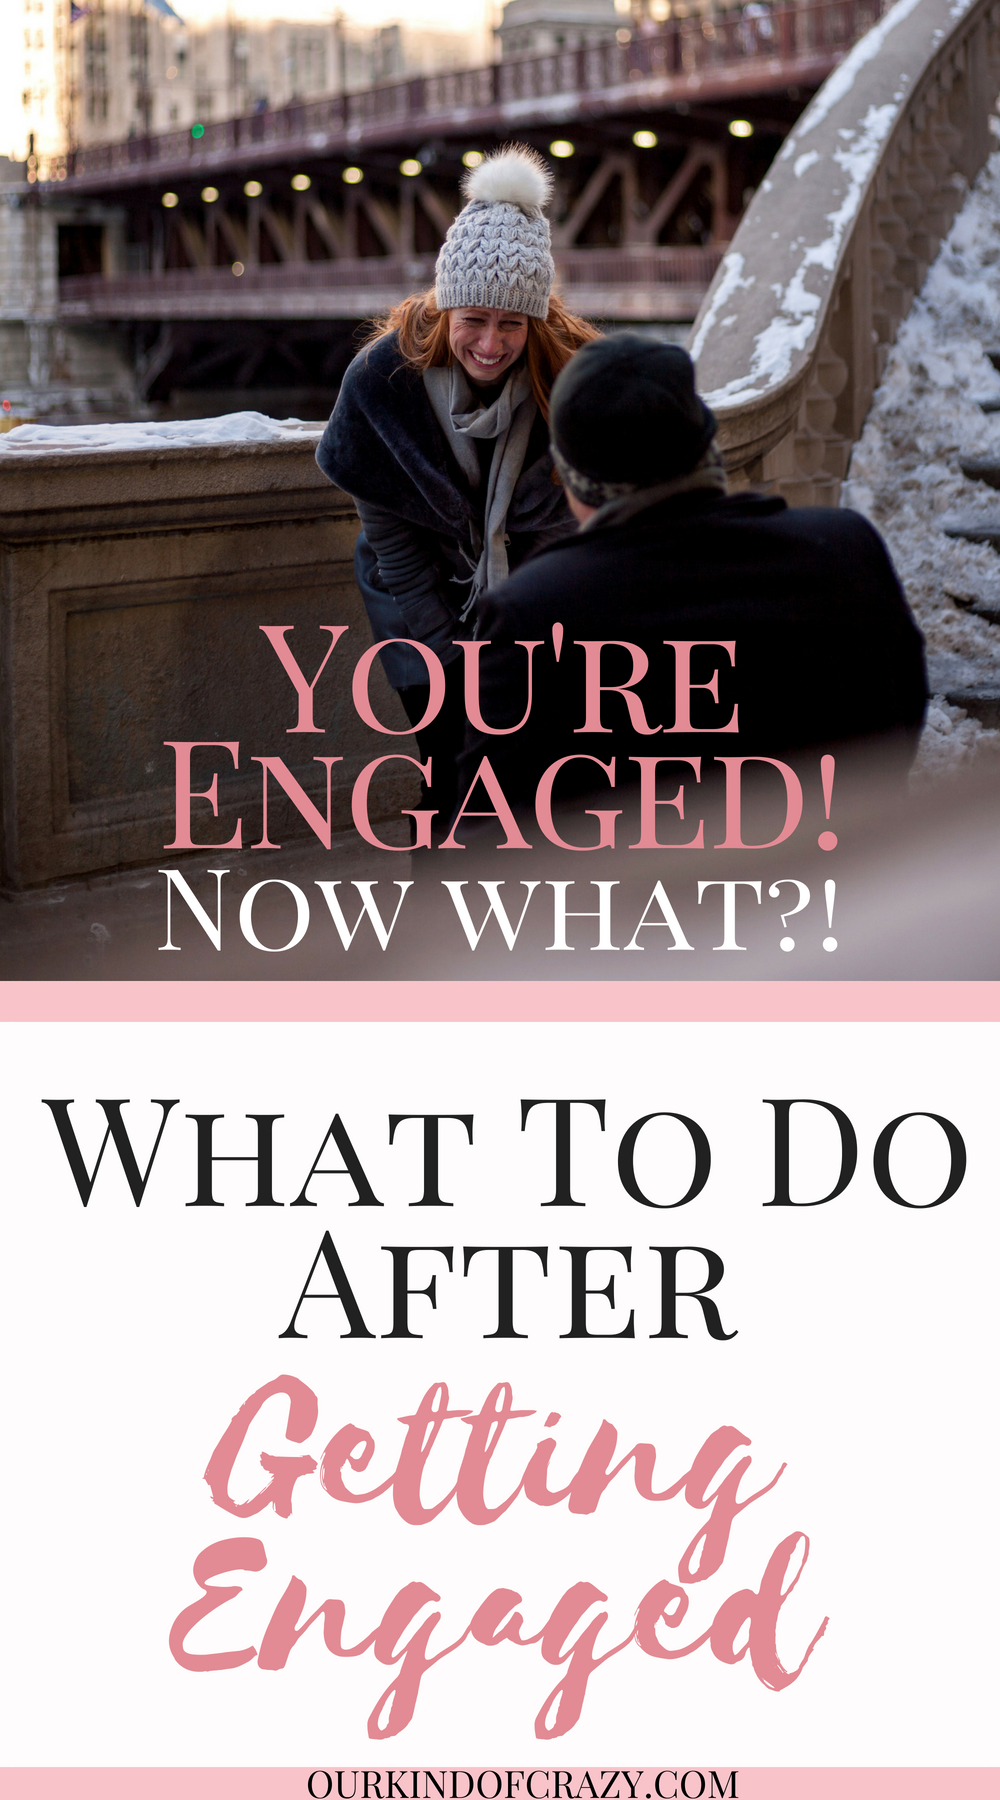 What to do when you get engaged...You're Engaged! Now what?! Here are things you should do after you get engaged. #engaged #weddingplanning #wedding